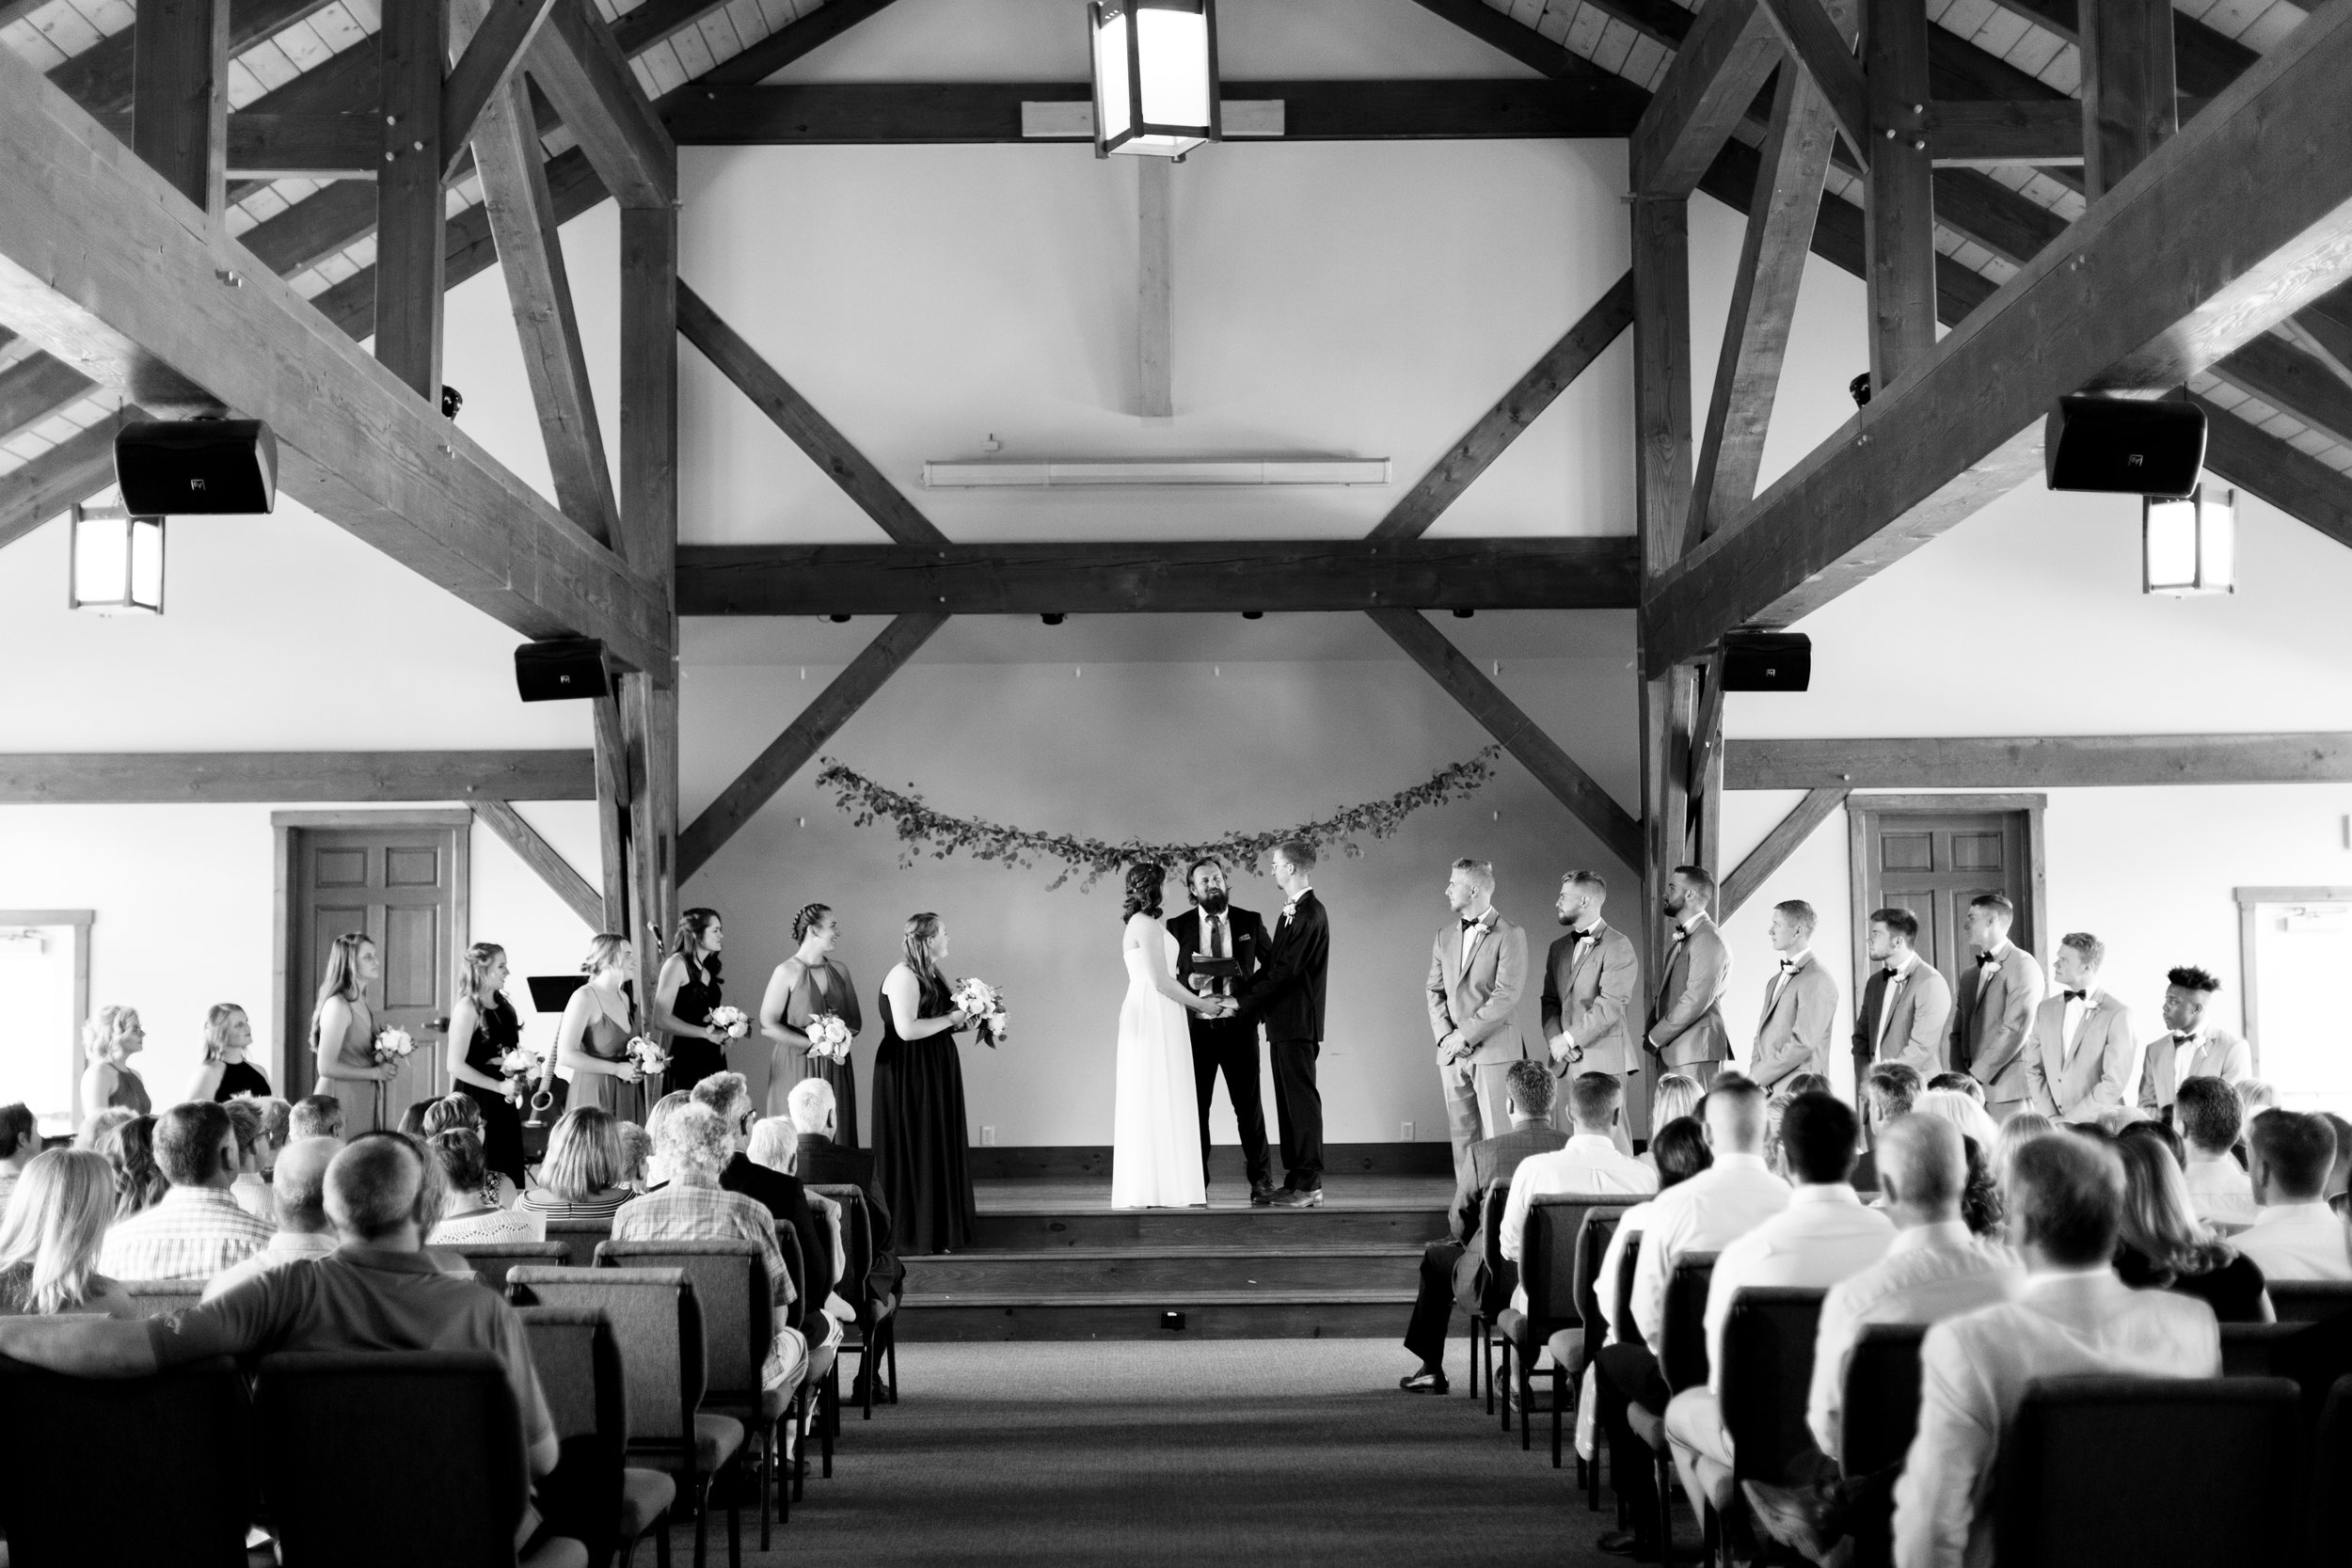 katie_graham_wedding_photography_wedding_photographer_luxury_destination_bemus_point_lakewood_mayville_chautauqua_lake_new_york_buffalo_erie_pennsylvania